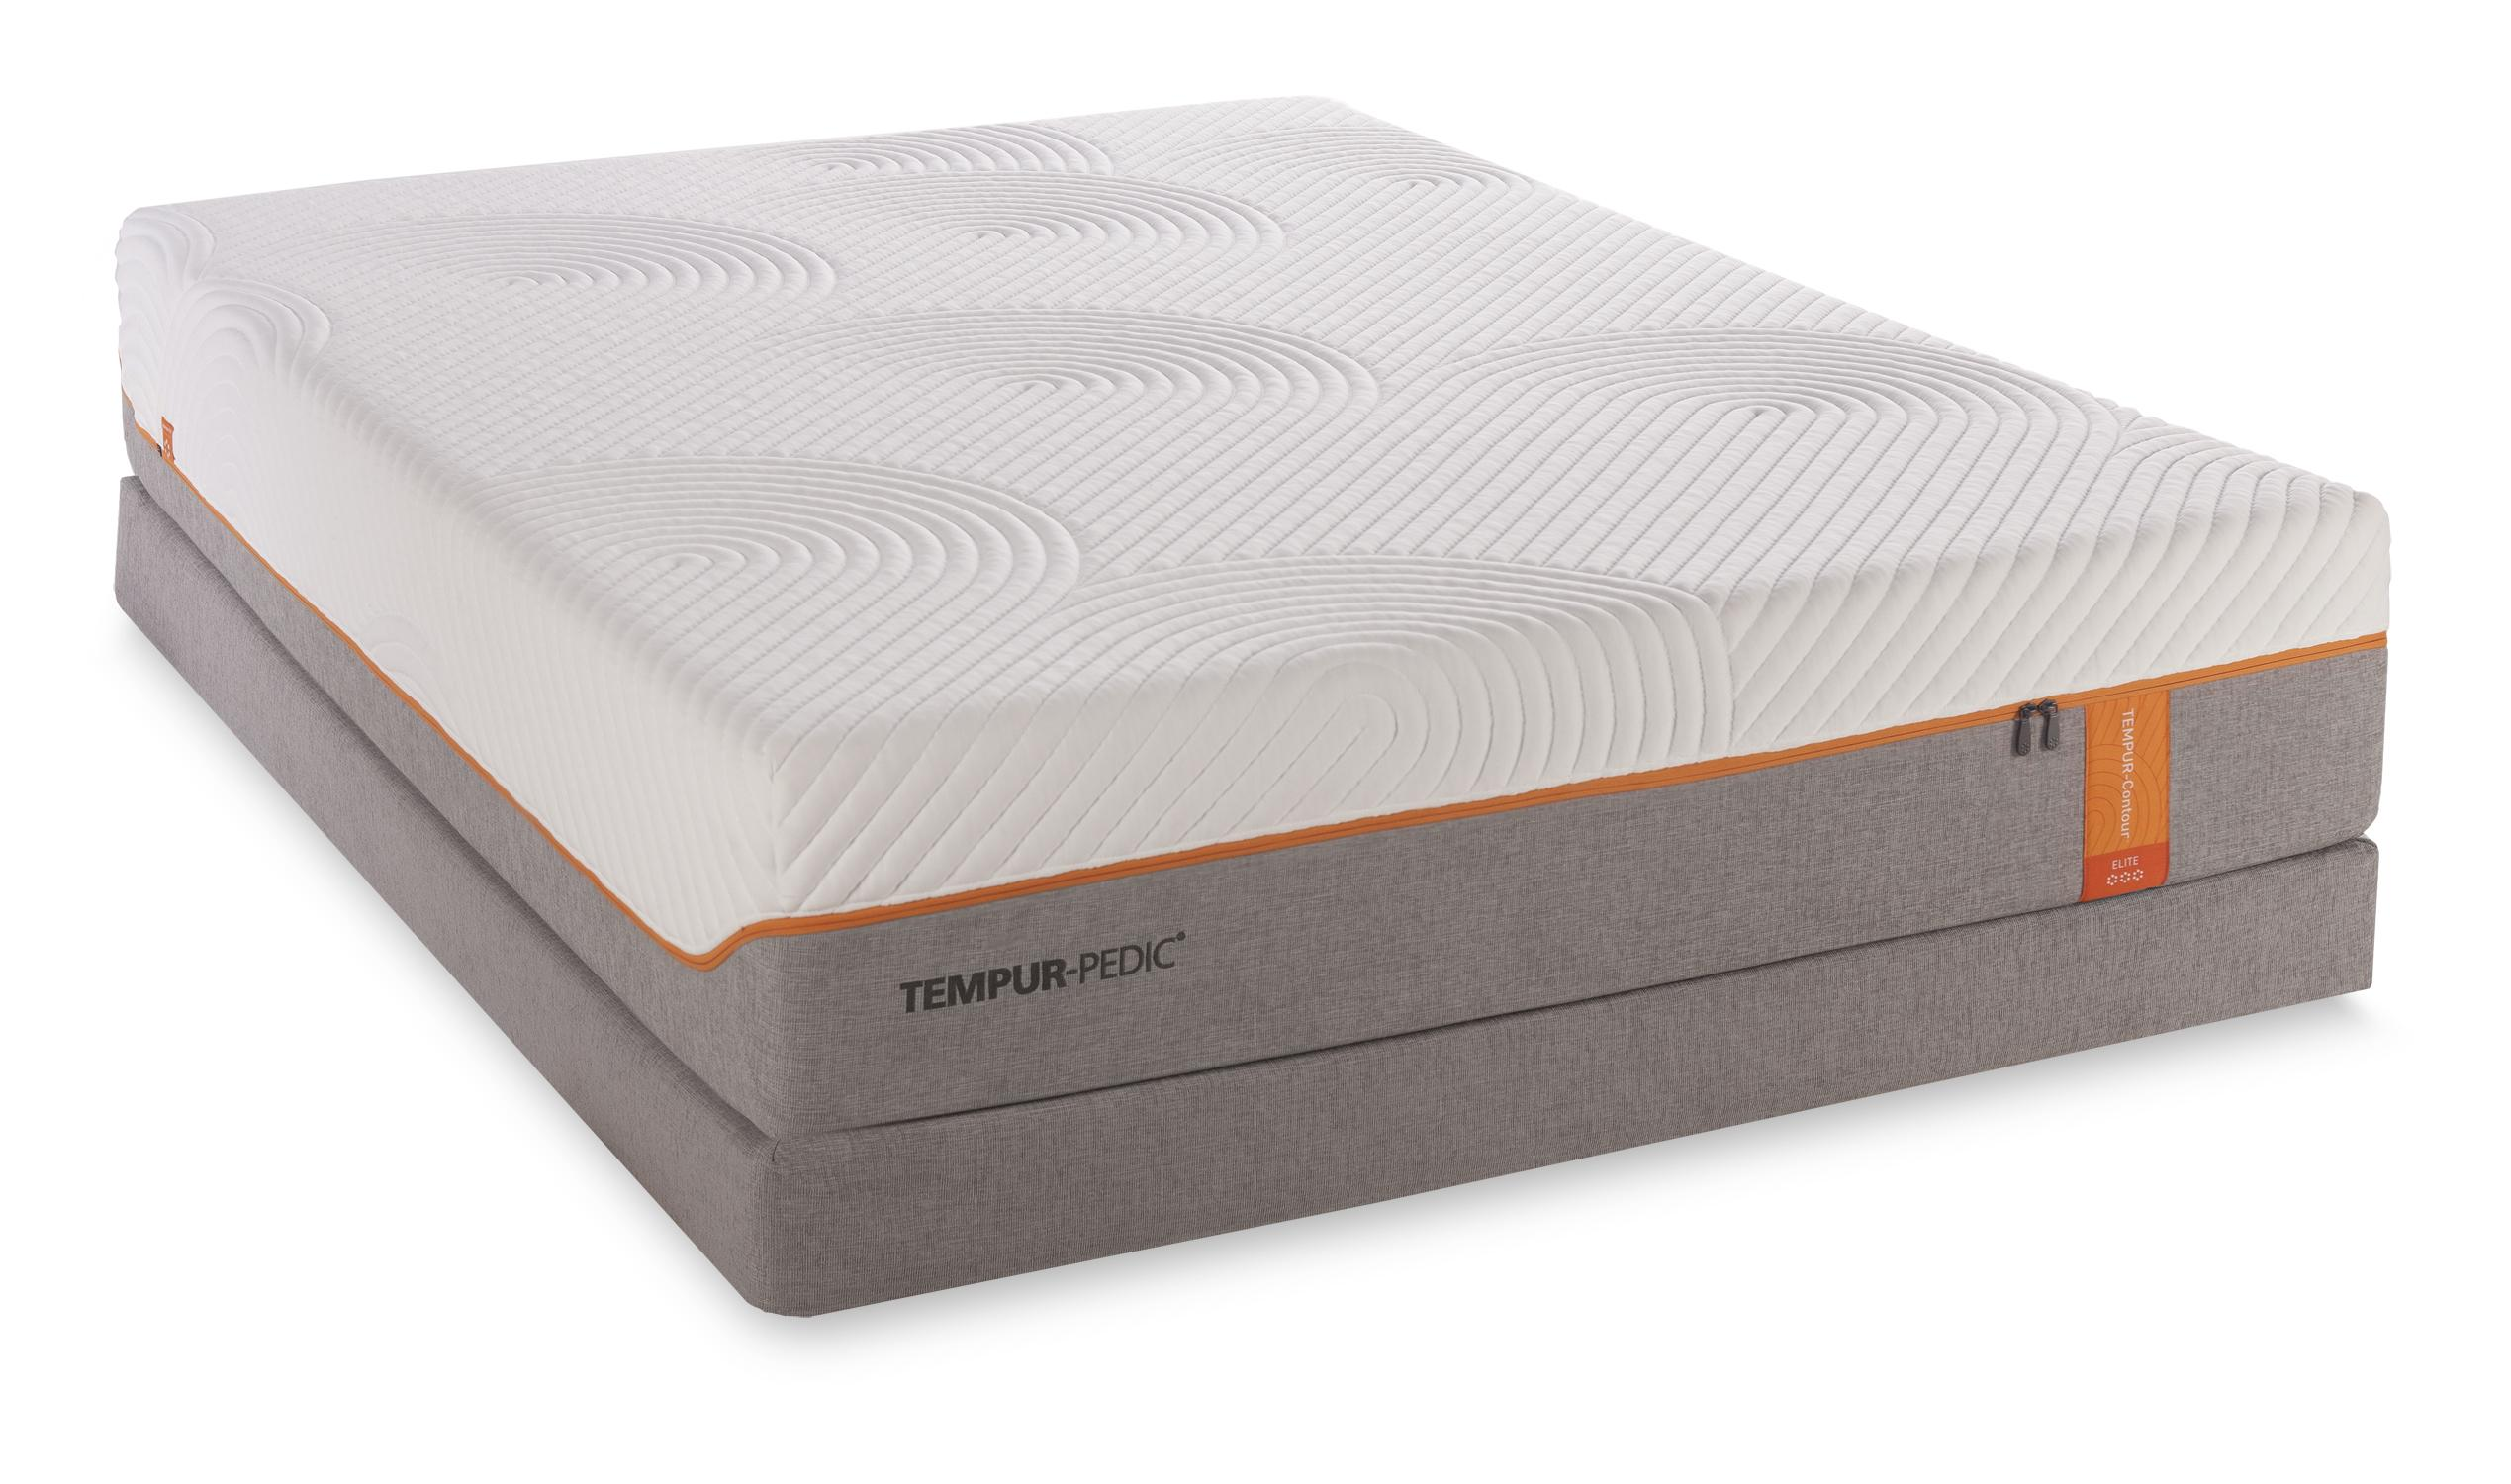 Tempur-Pedic® TEMPUR-Contour Elite Twin XL Medium-Firm Mattress Set - Item Number: 10257120+20510120